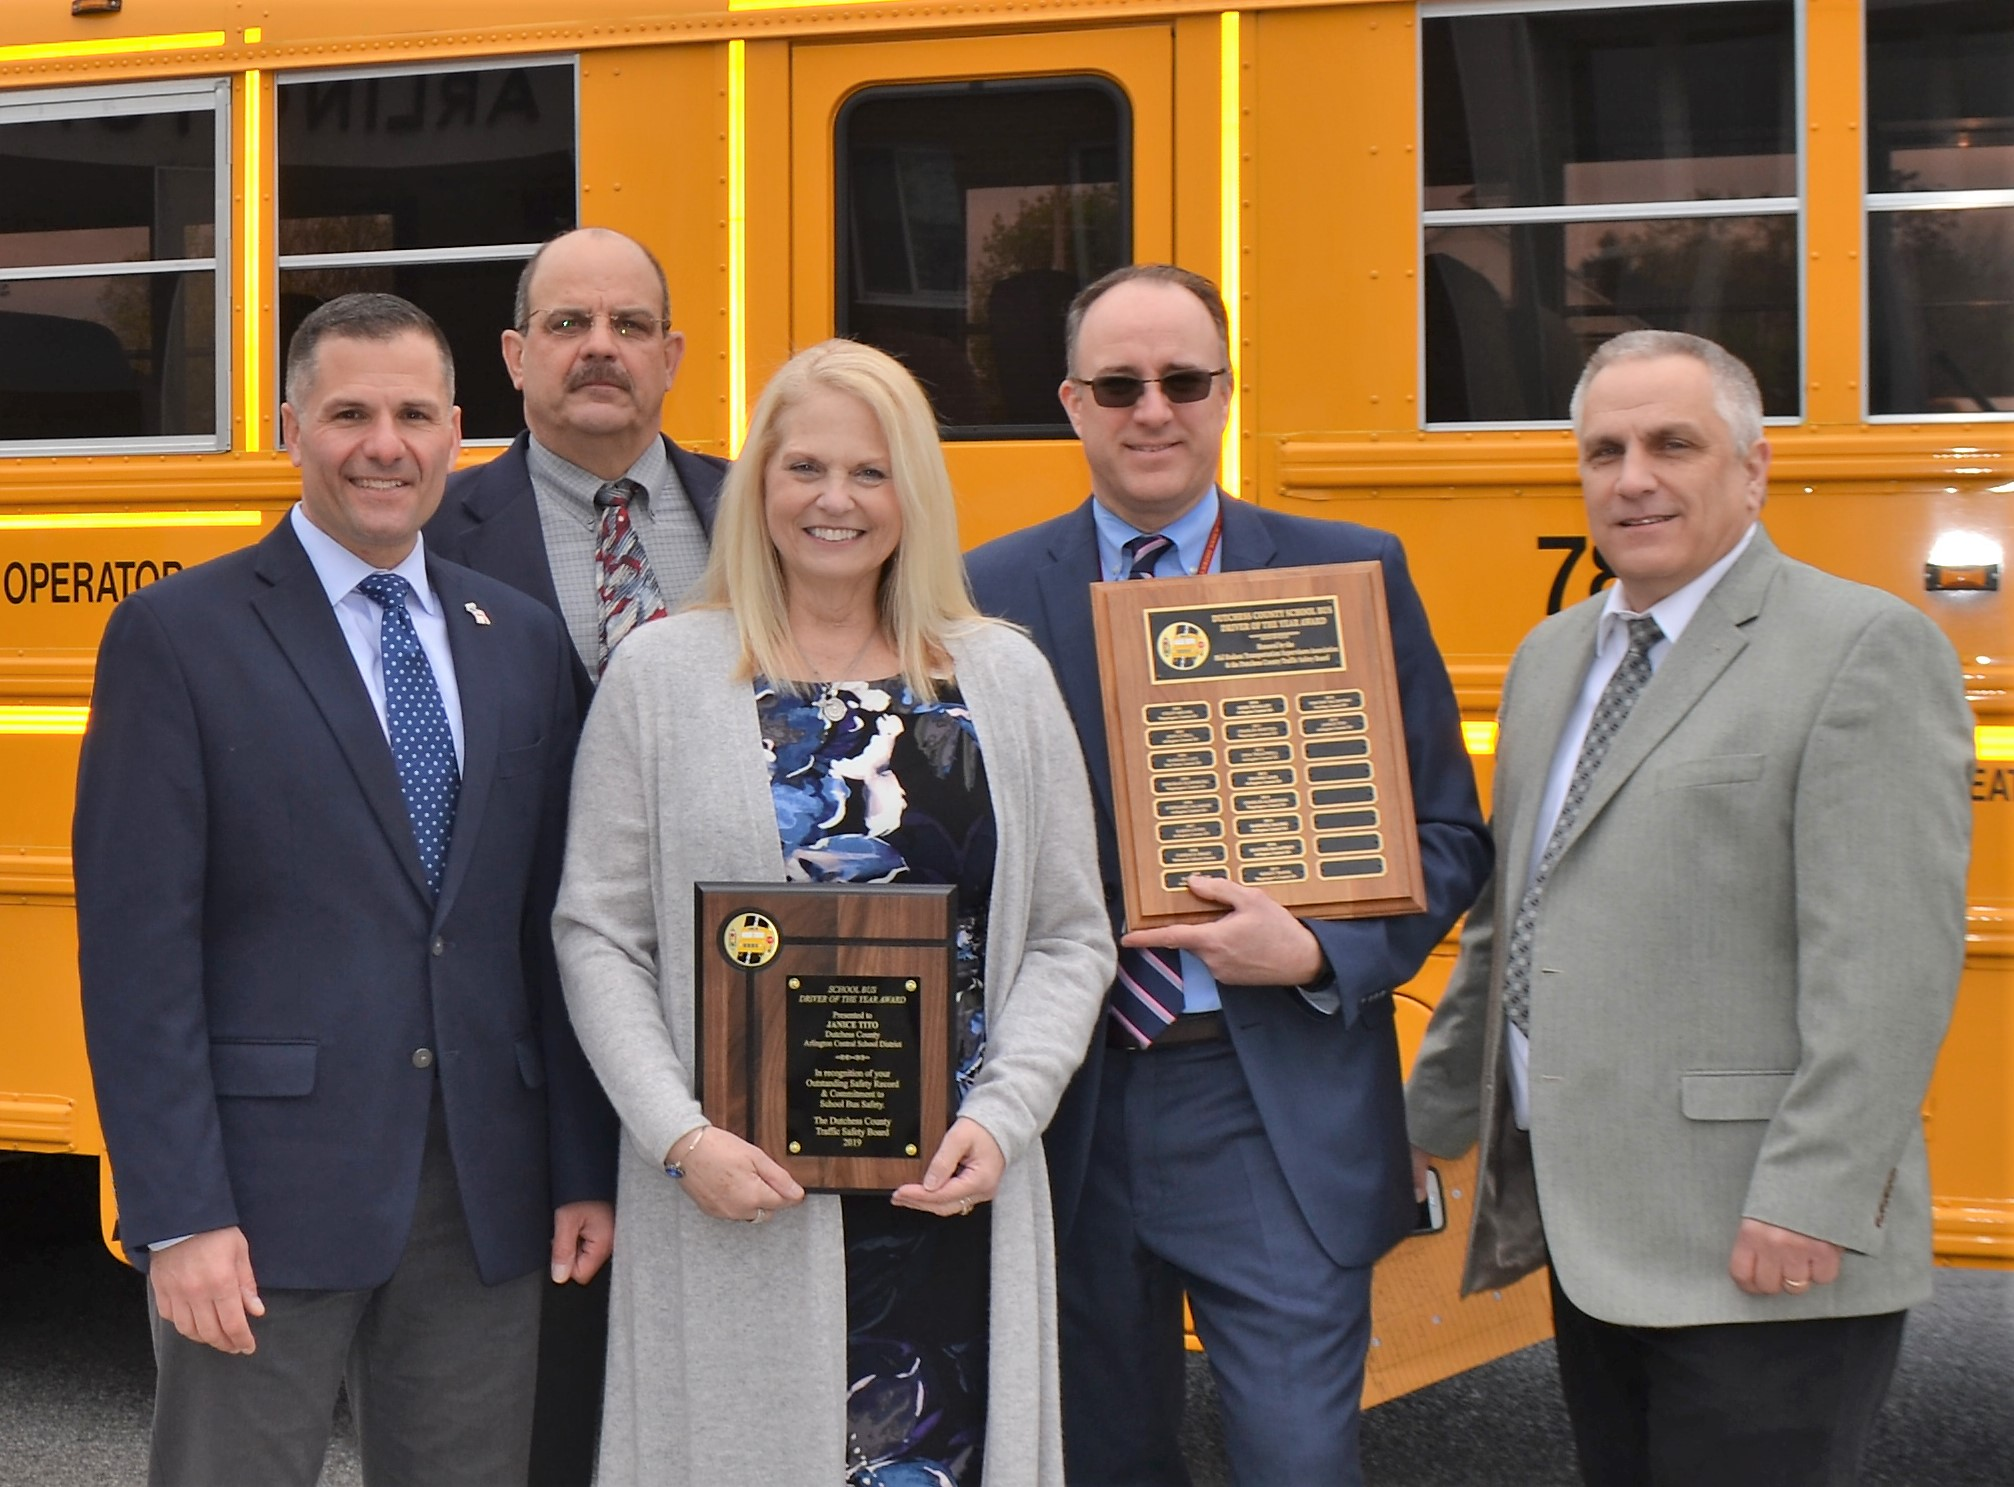 Dutchess County Executive Marcus J. Molinaro and Dutchess County Traffic Safety Board Administrator William C. Johnson presented Janice Tito with the 18th annual Dutchess County School Bus Driver of the Year Award. From left, County Executive Molinaro, Mr. Johnson, Ms. Tito, Arlington Central School District Superintendent Brendan J. Lyons, and Mid-Hudson Transportation Supervisor's Association President Ron Mackey.